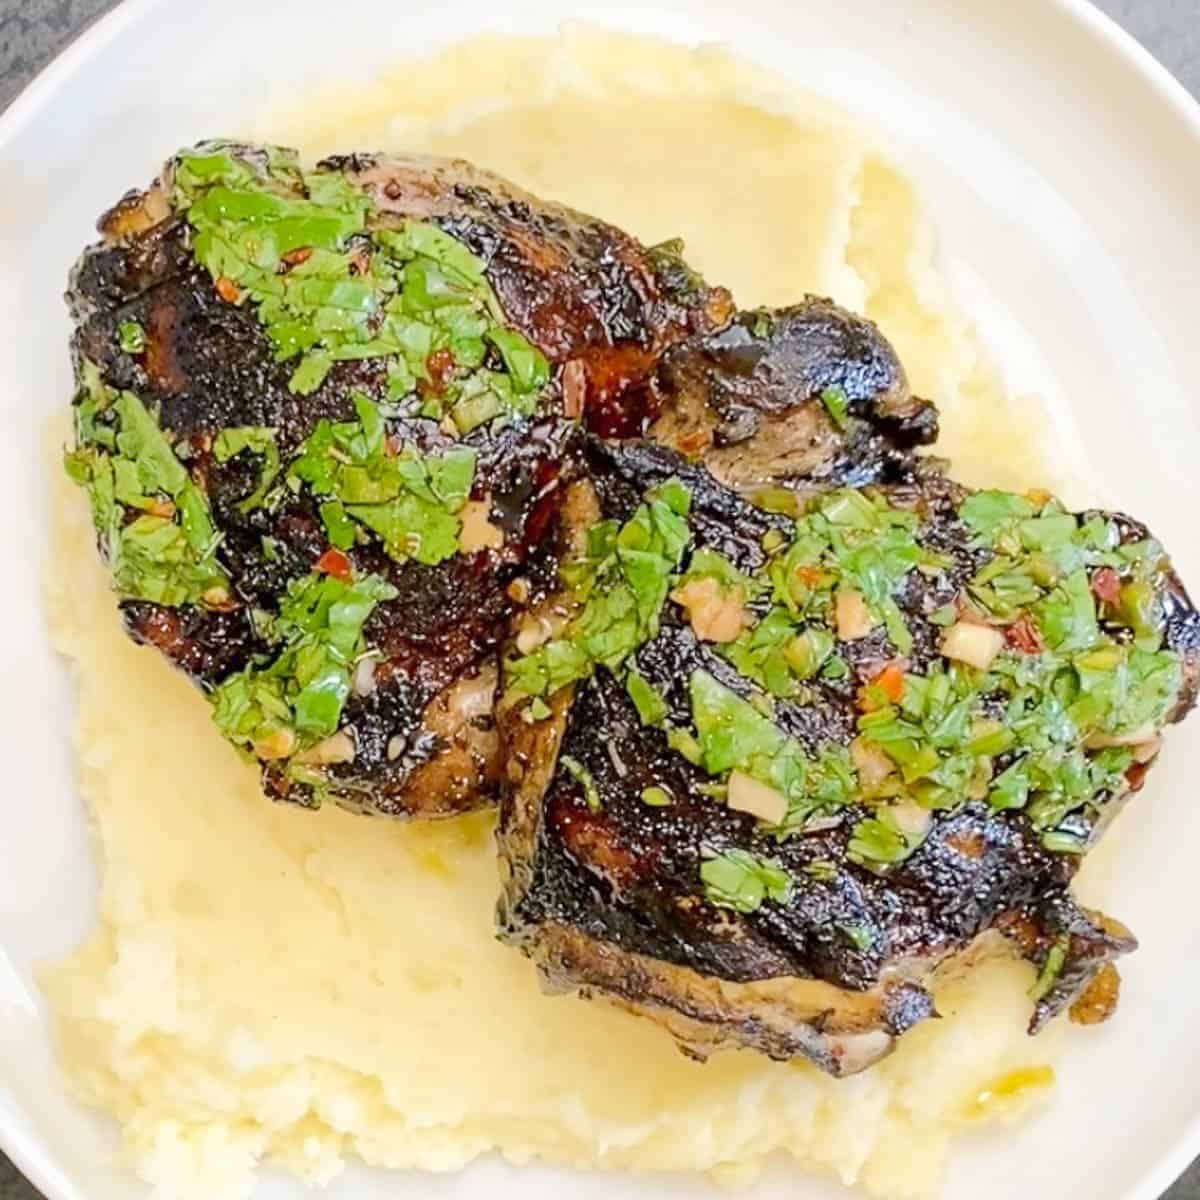 grilled chimichurri chicken thighs served on top of a bed of goat cheese mashed potatoes